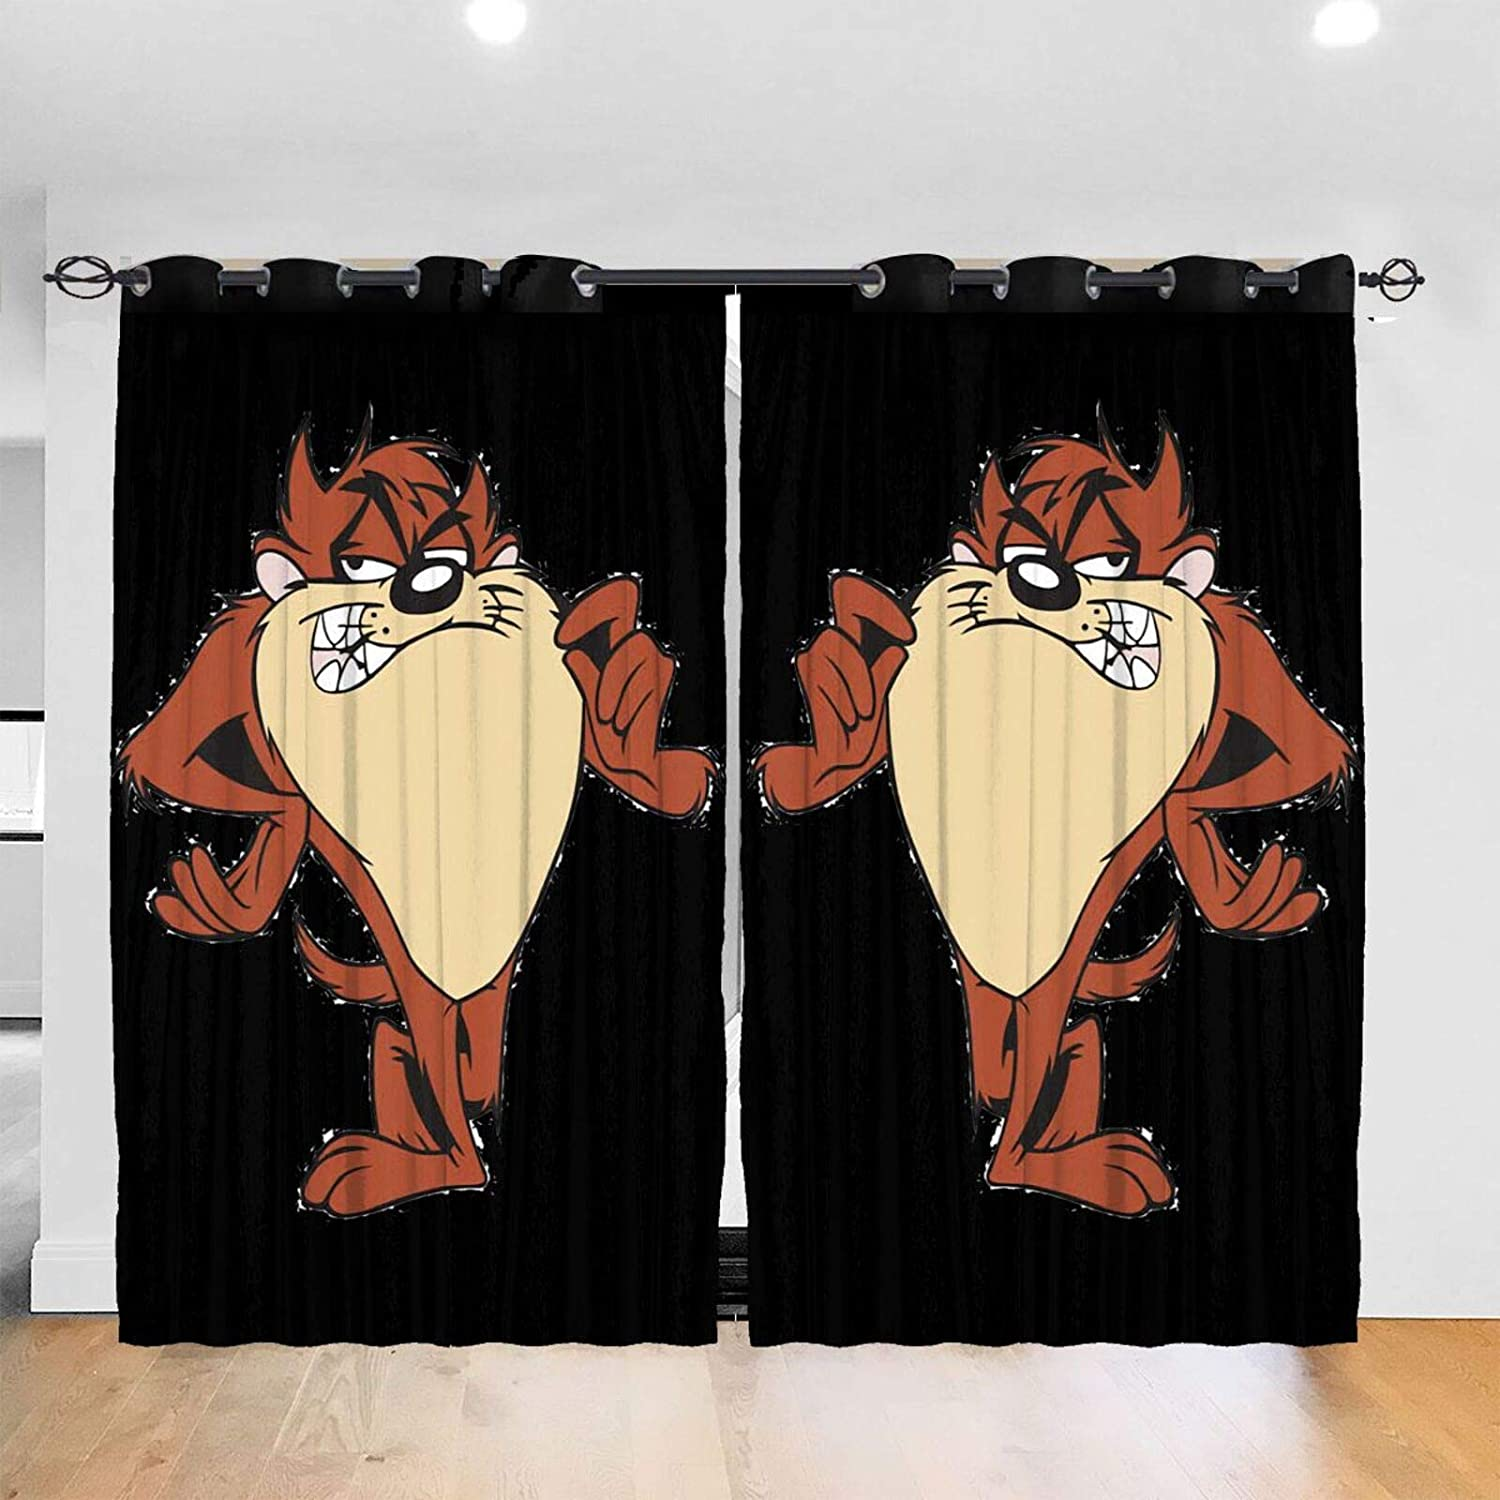 SuperDuo Loo-Neytunes Tas-Manian Devil Taz Blackout Window Curtains Thermal Insulated Room Darkening Drape for Bedroom Living Room 52 X 72 Inch